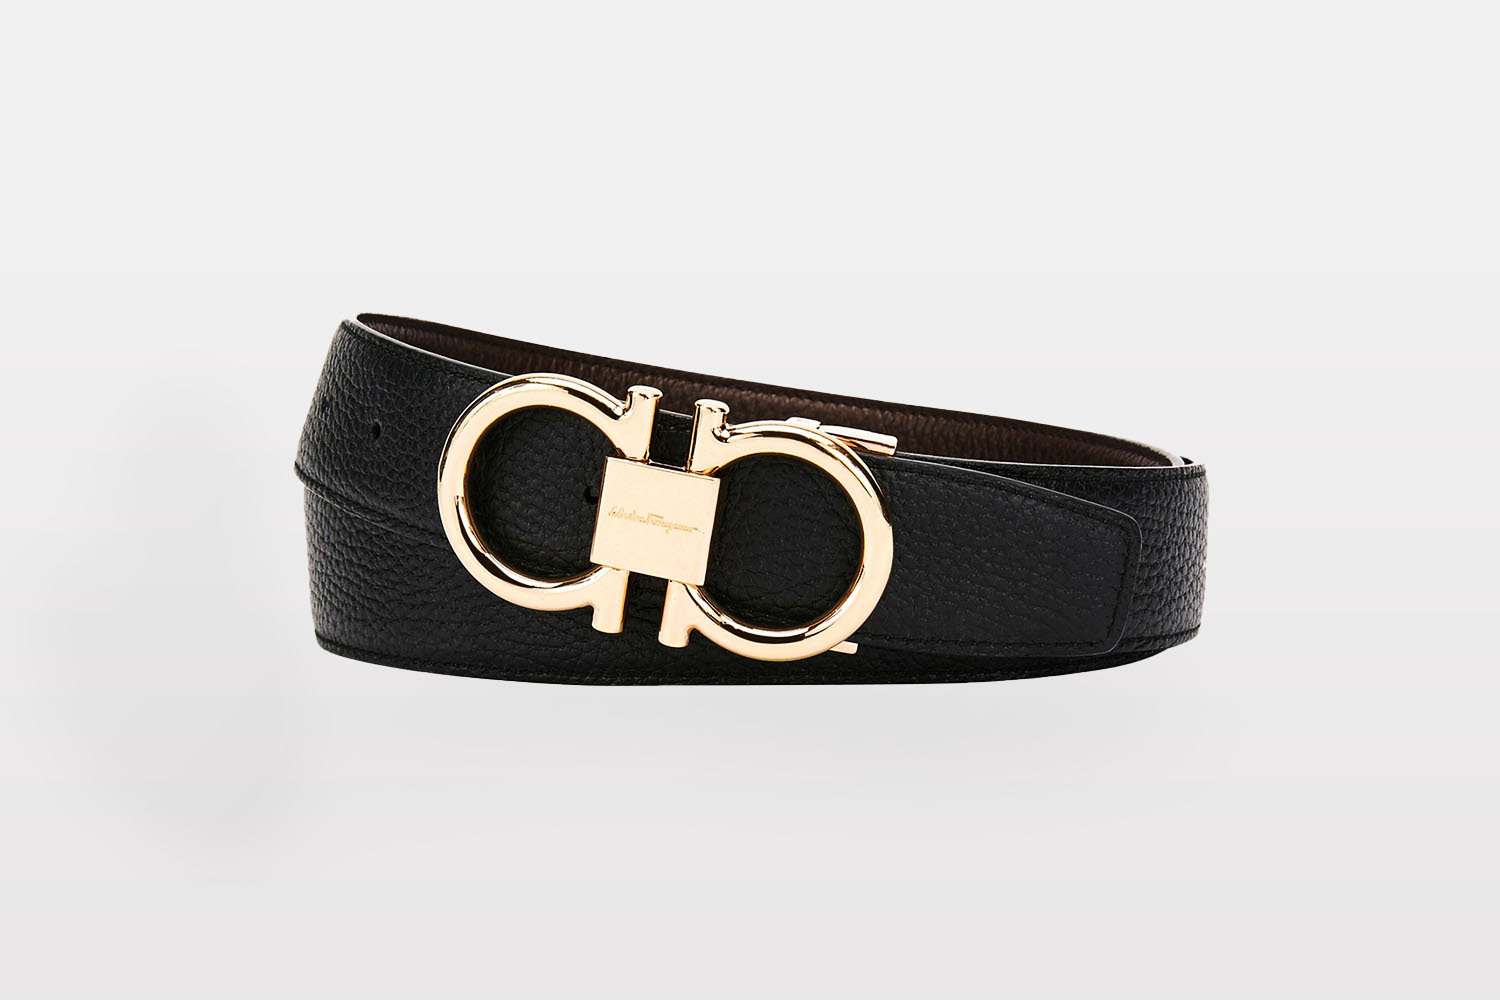 Salvatore Ferragamo Reversible Leather Belt With Rose-Tone Gancini Buckle from Neiman Marcus